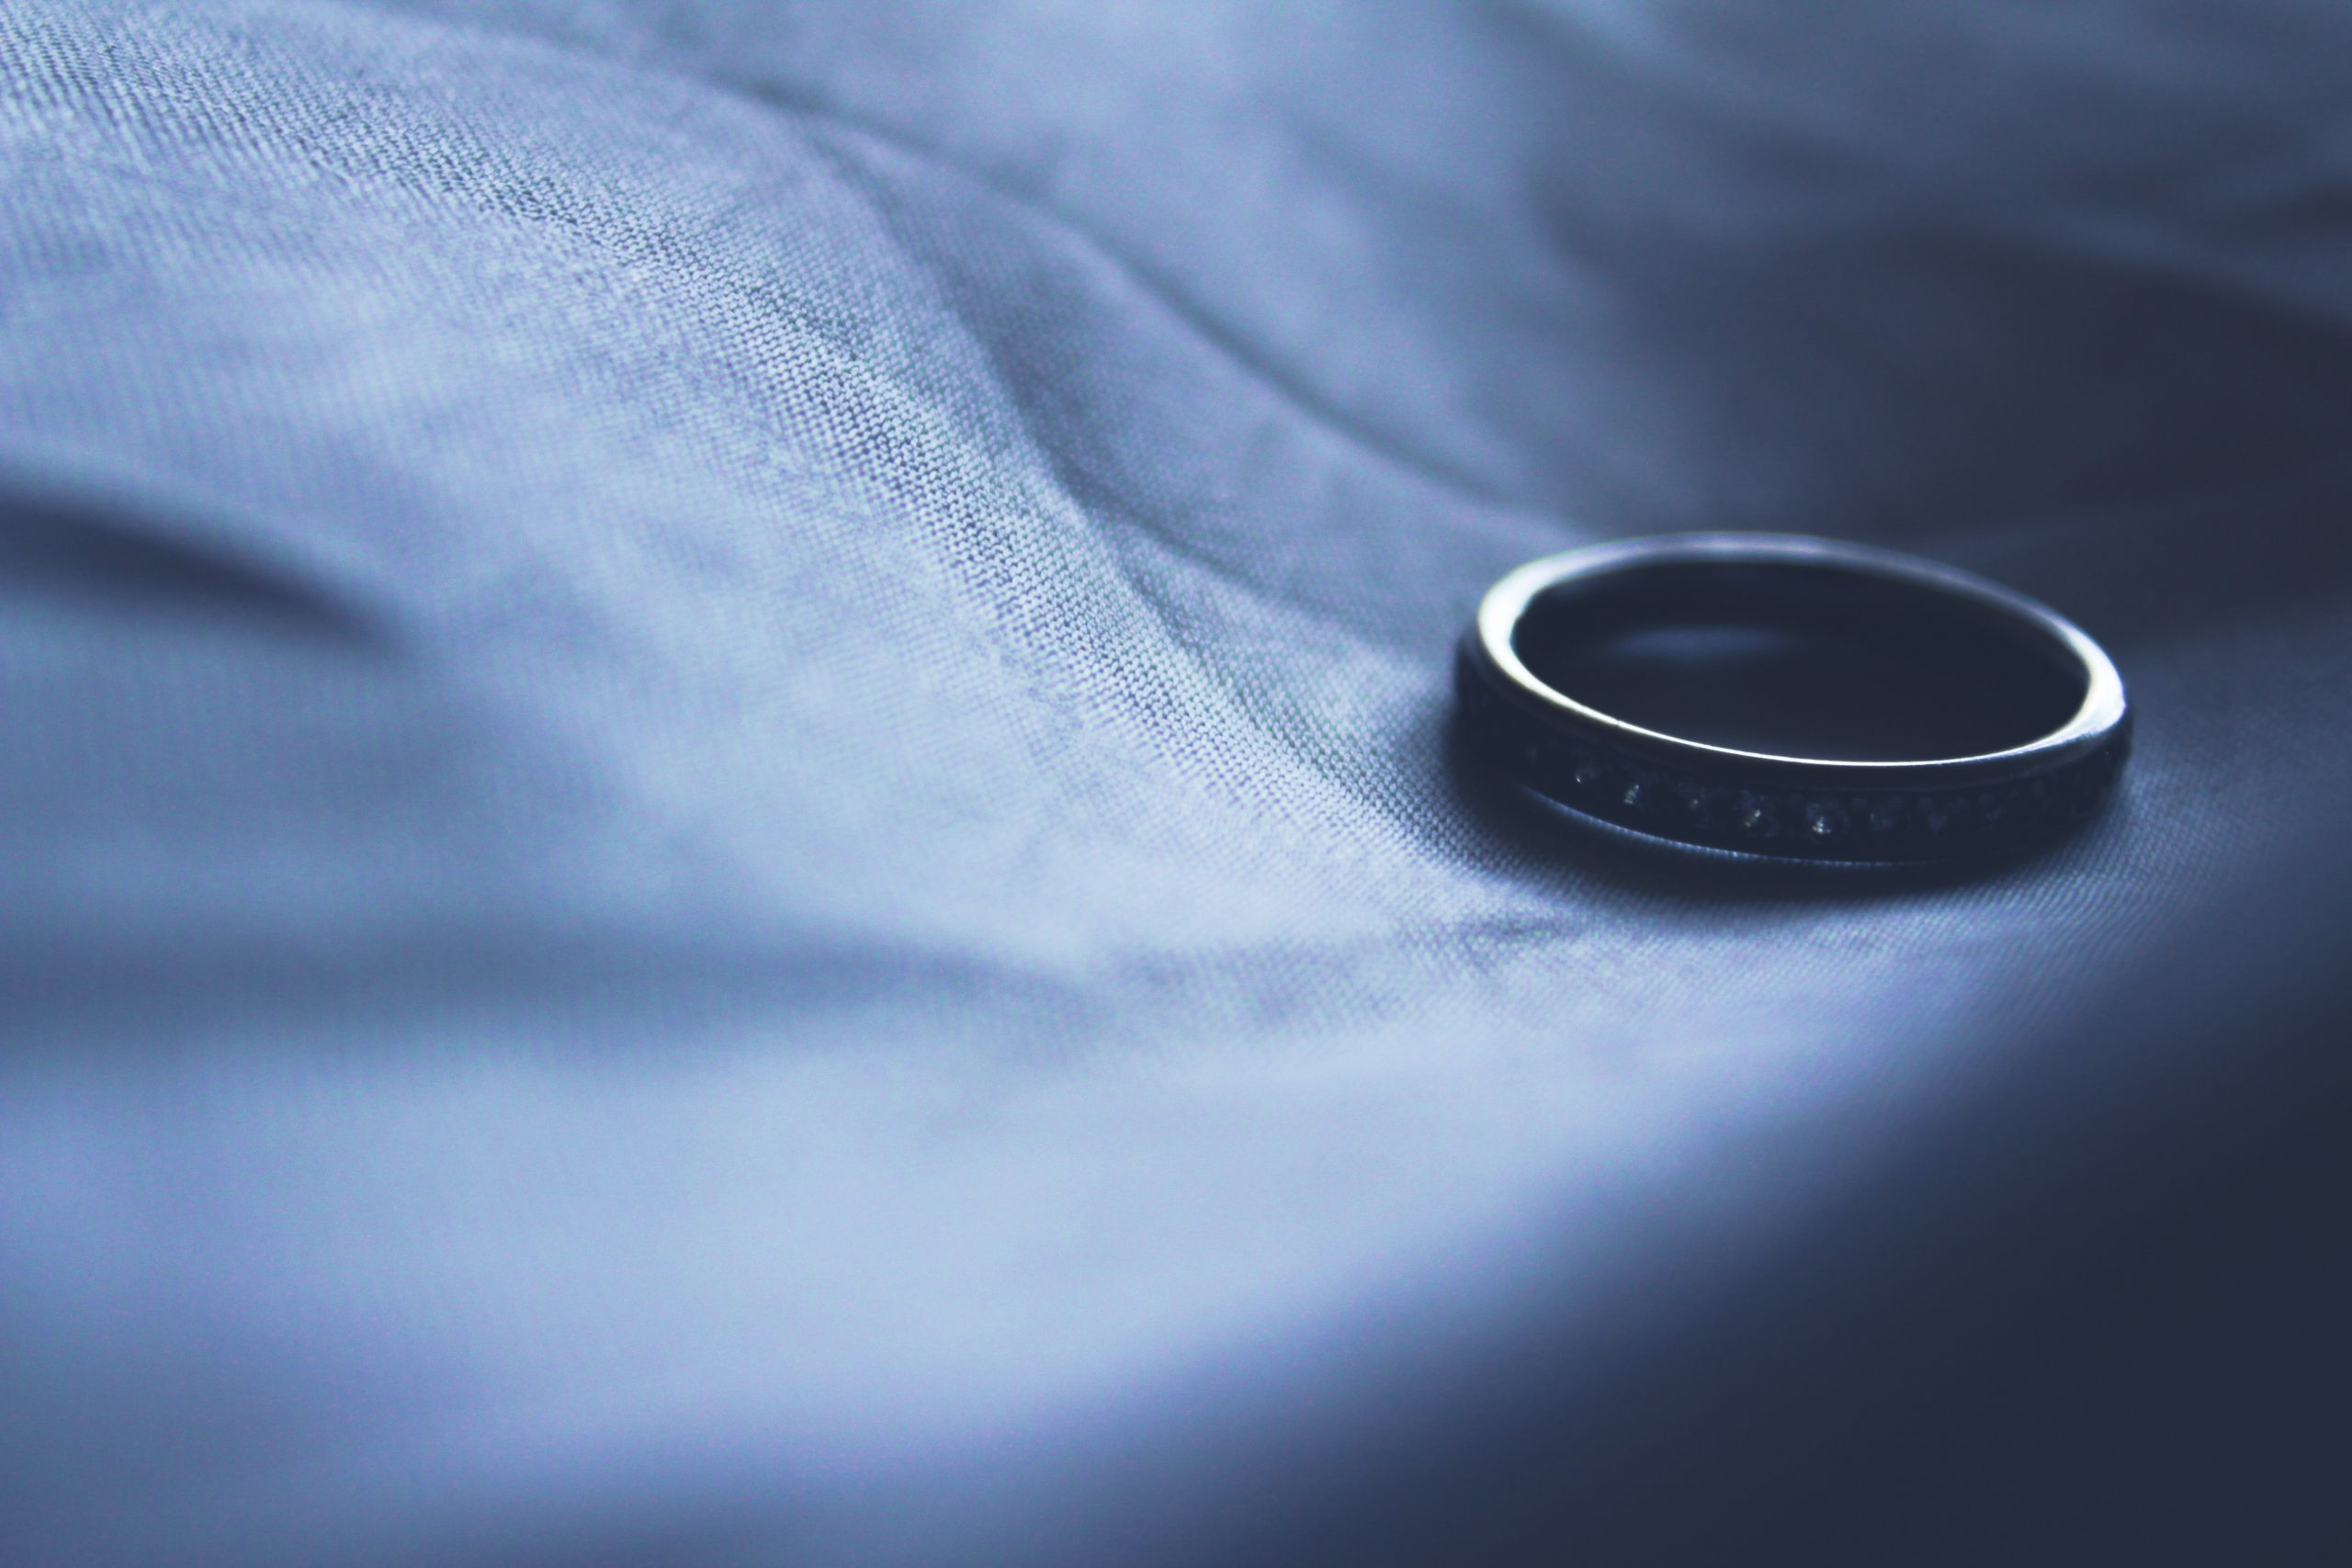 in an article about divorce, a wedding ring